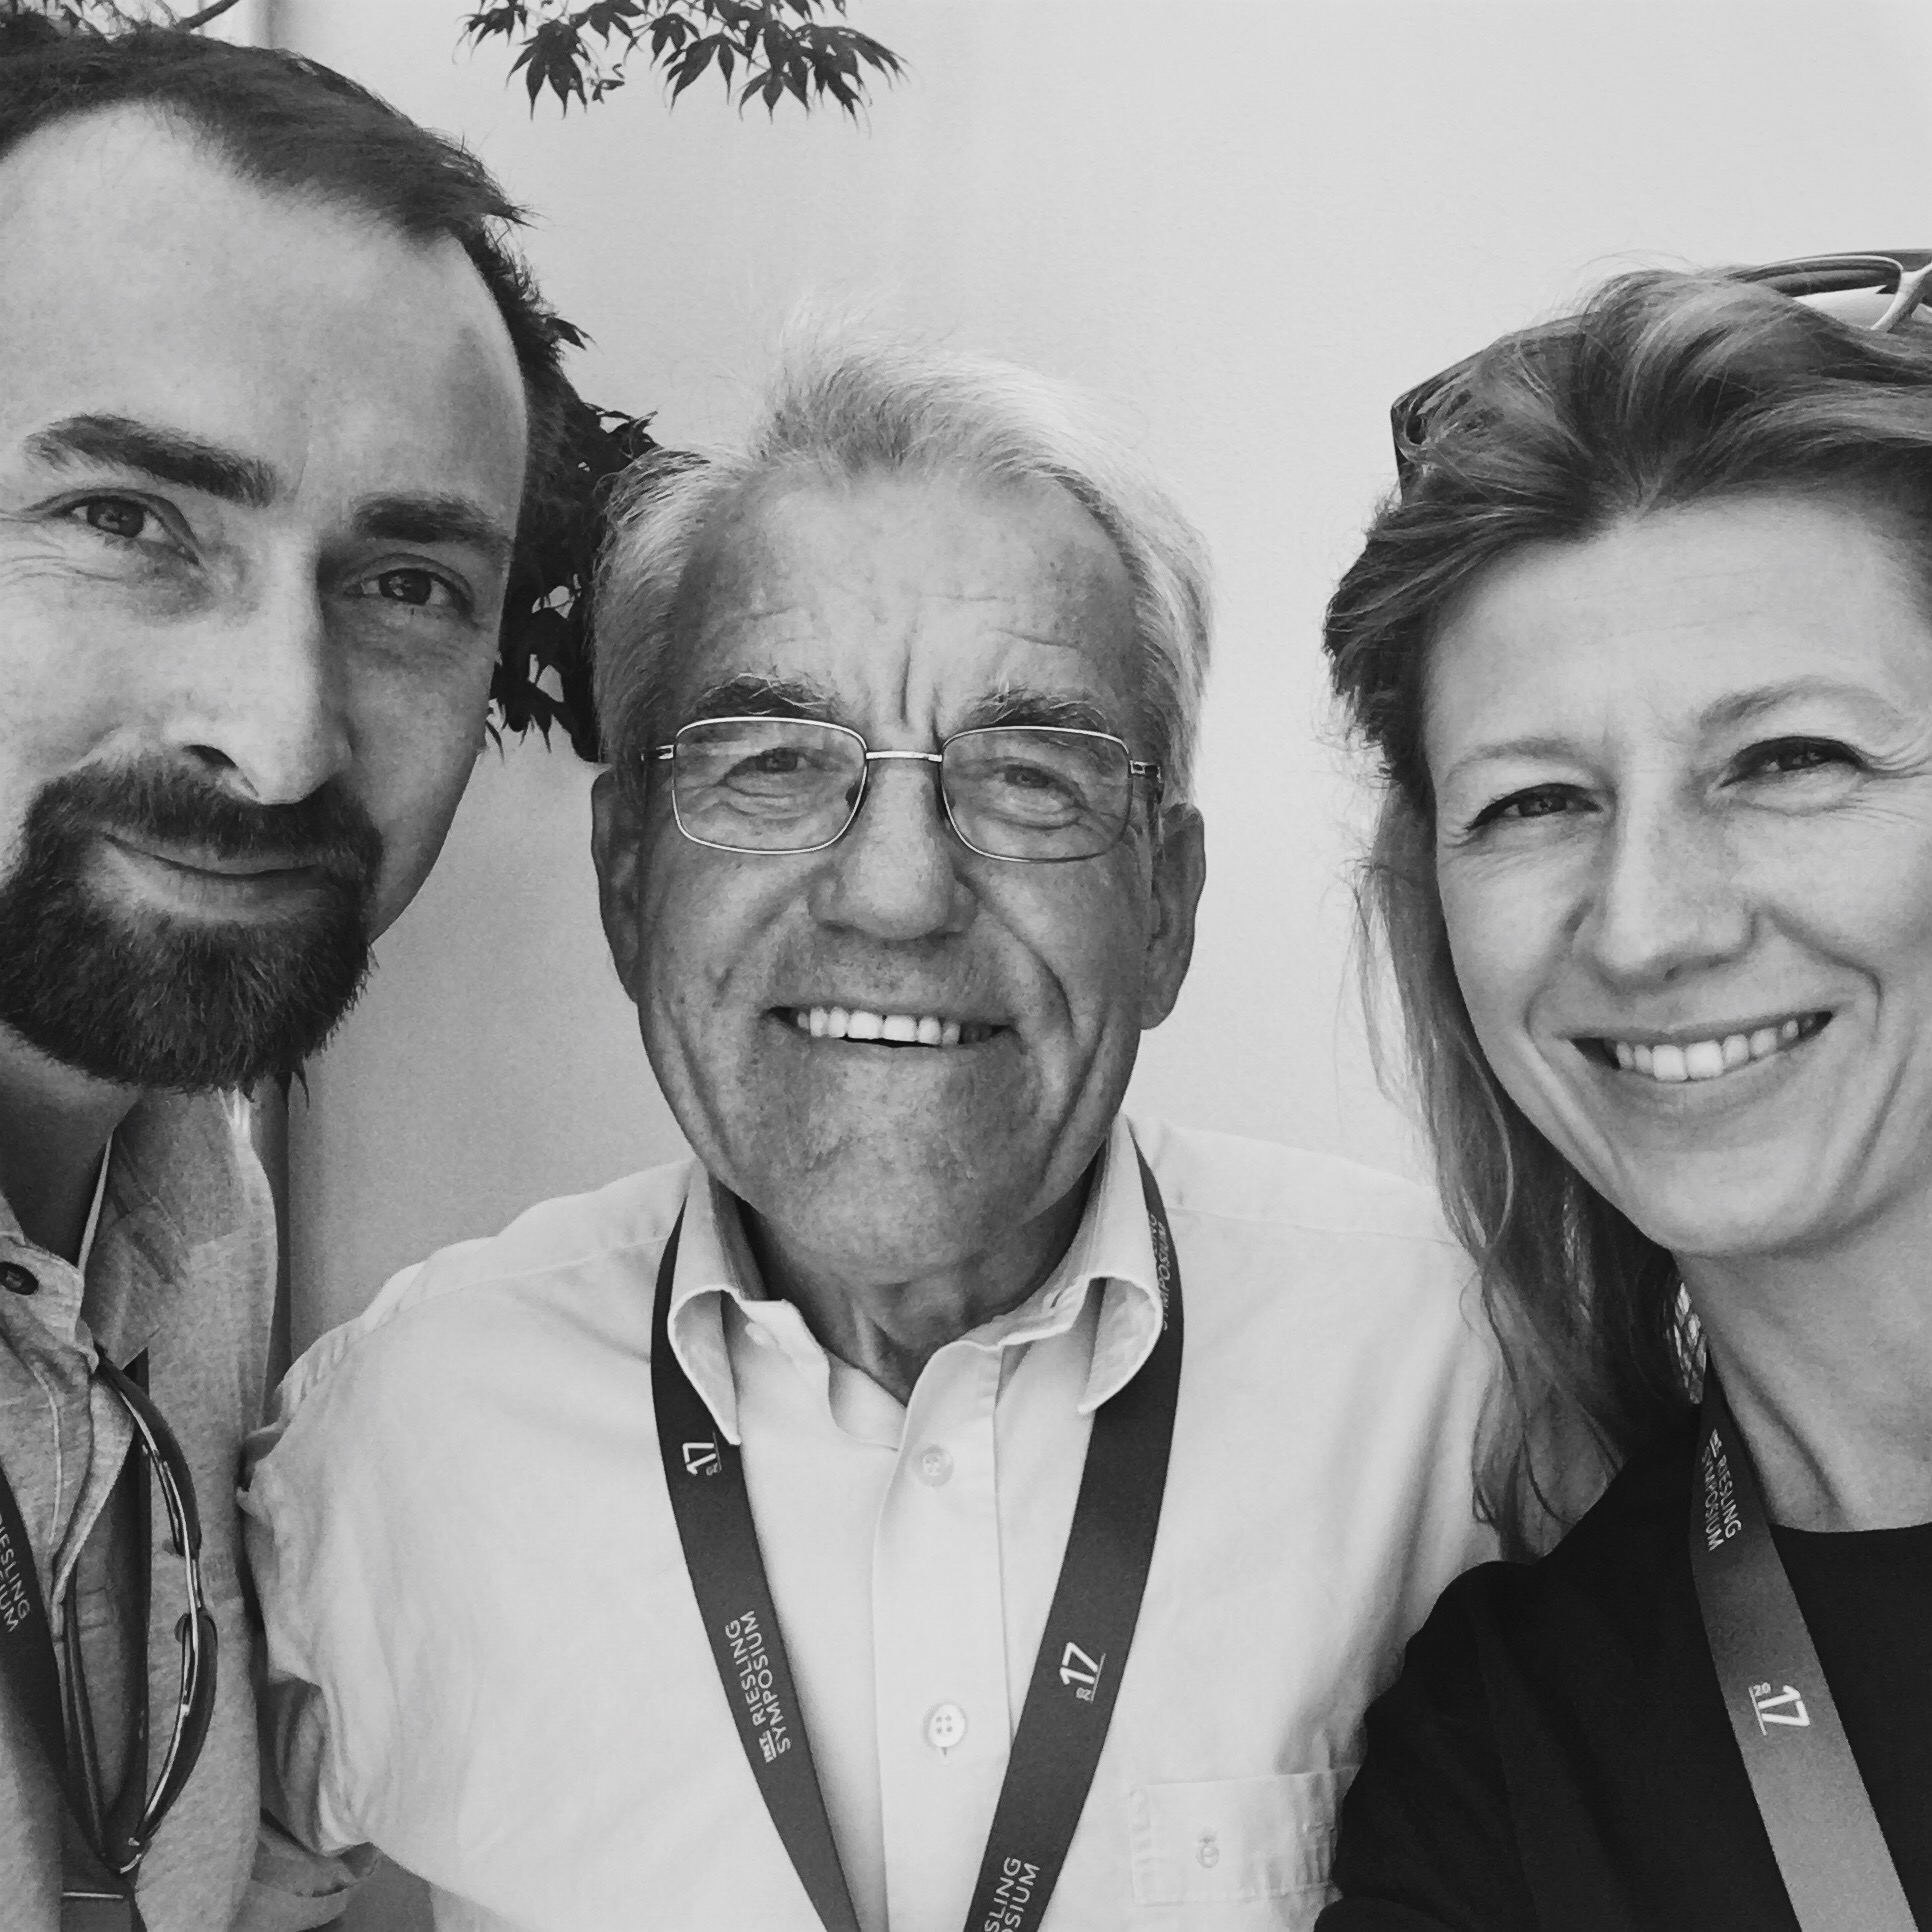 He is one of the heroes of Austrian winemaking and a great person to talk to: Emmerich Knoll.